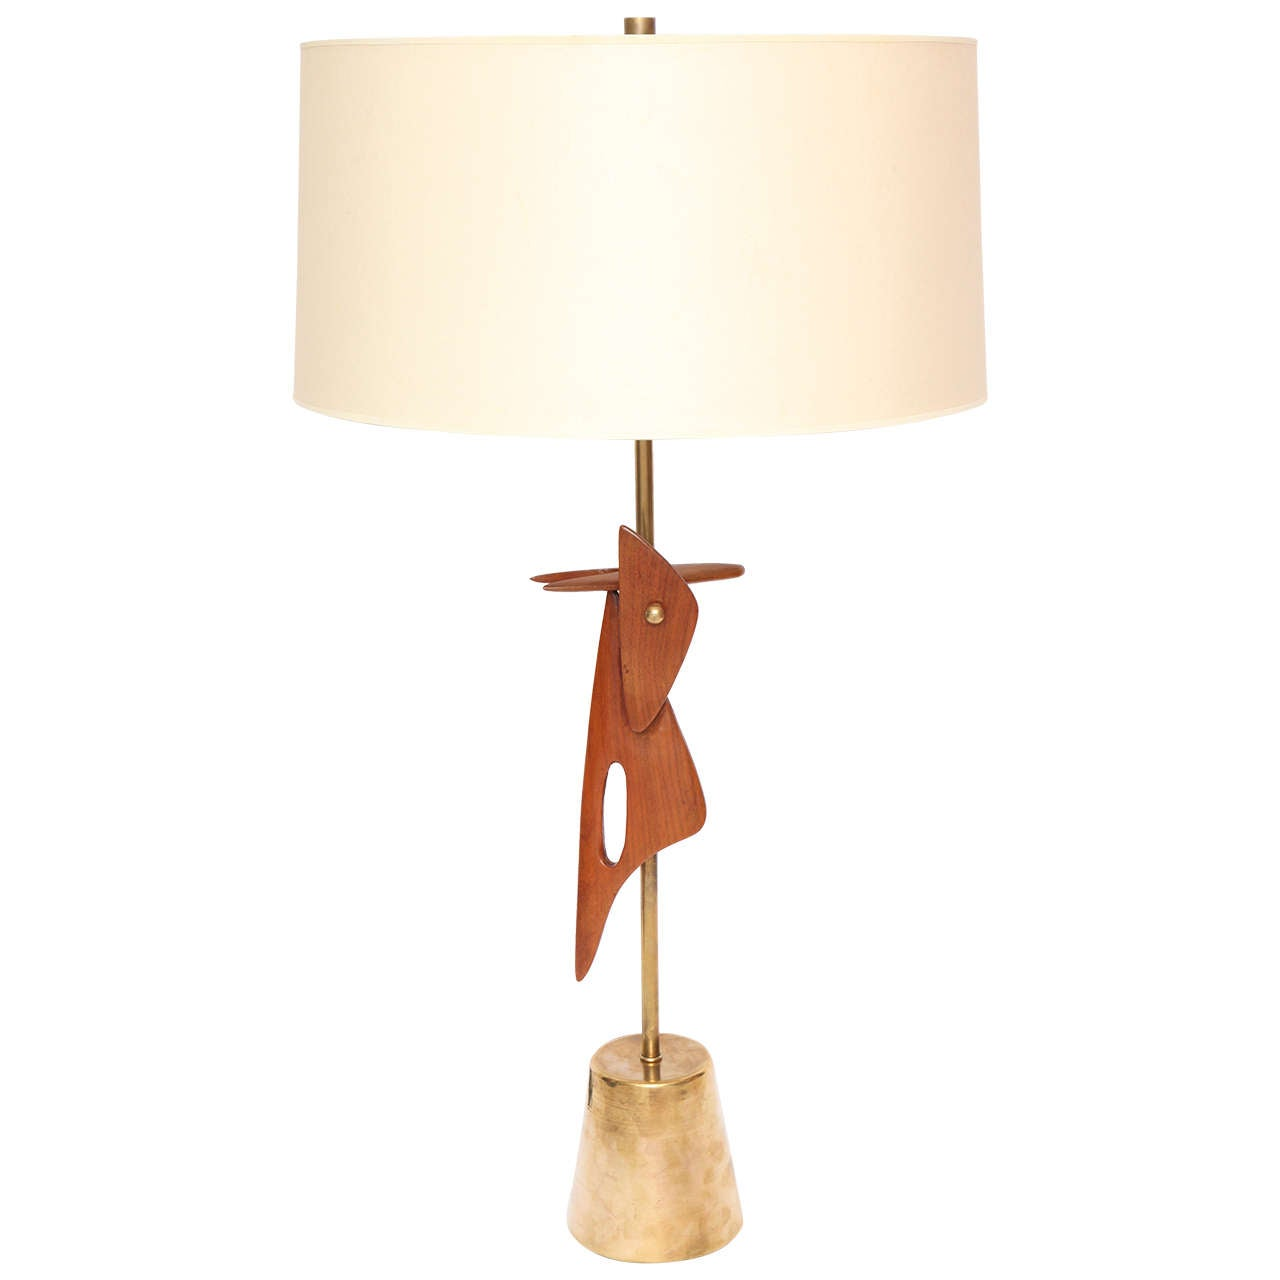 1950s Sculptural Amorphic Wood and Brass Table Lamp For Sale